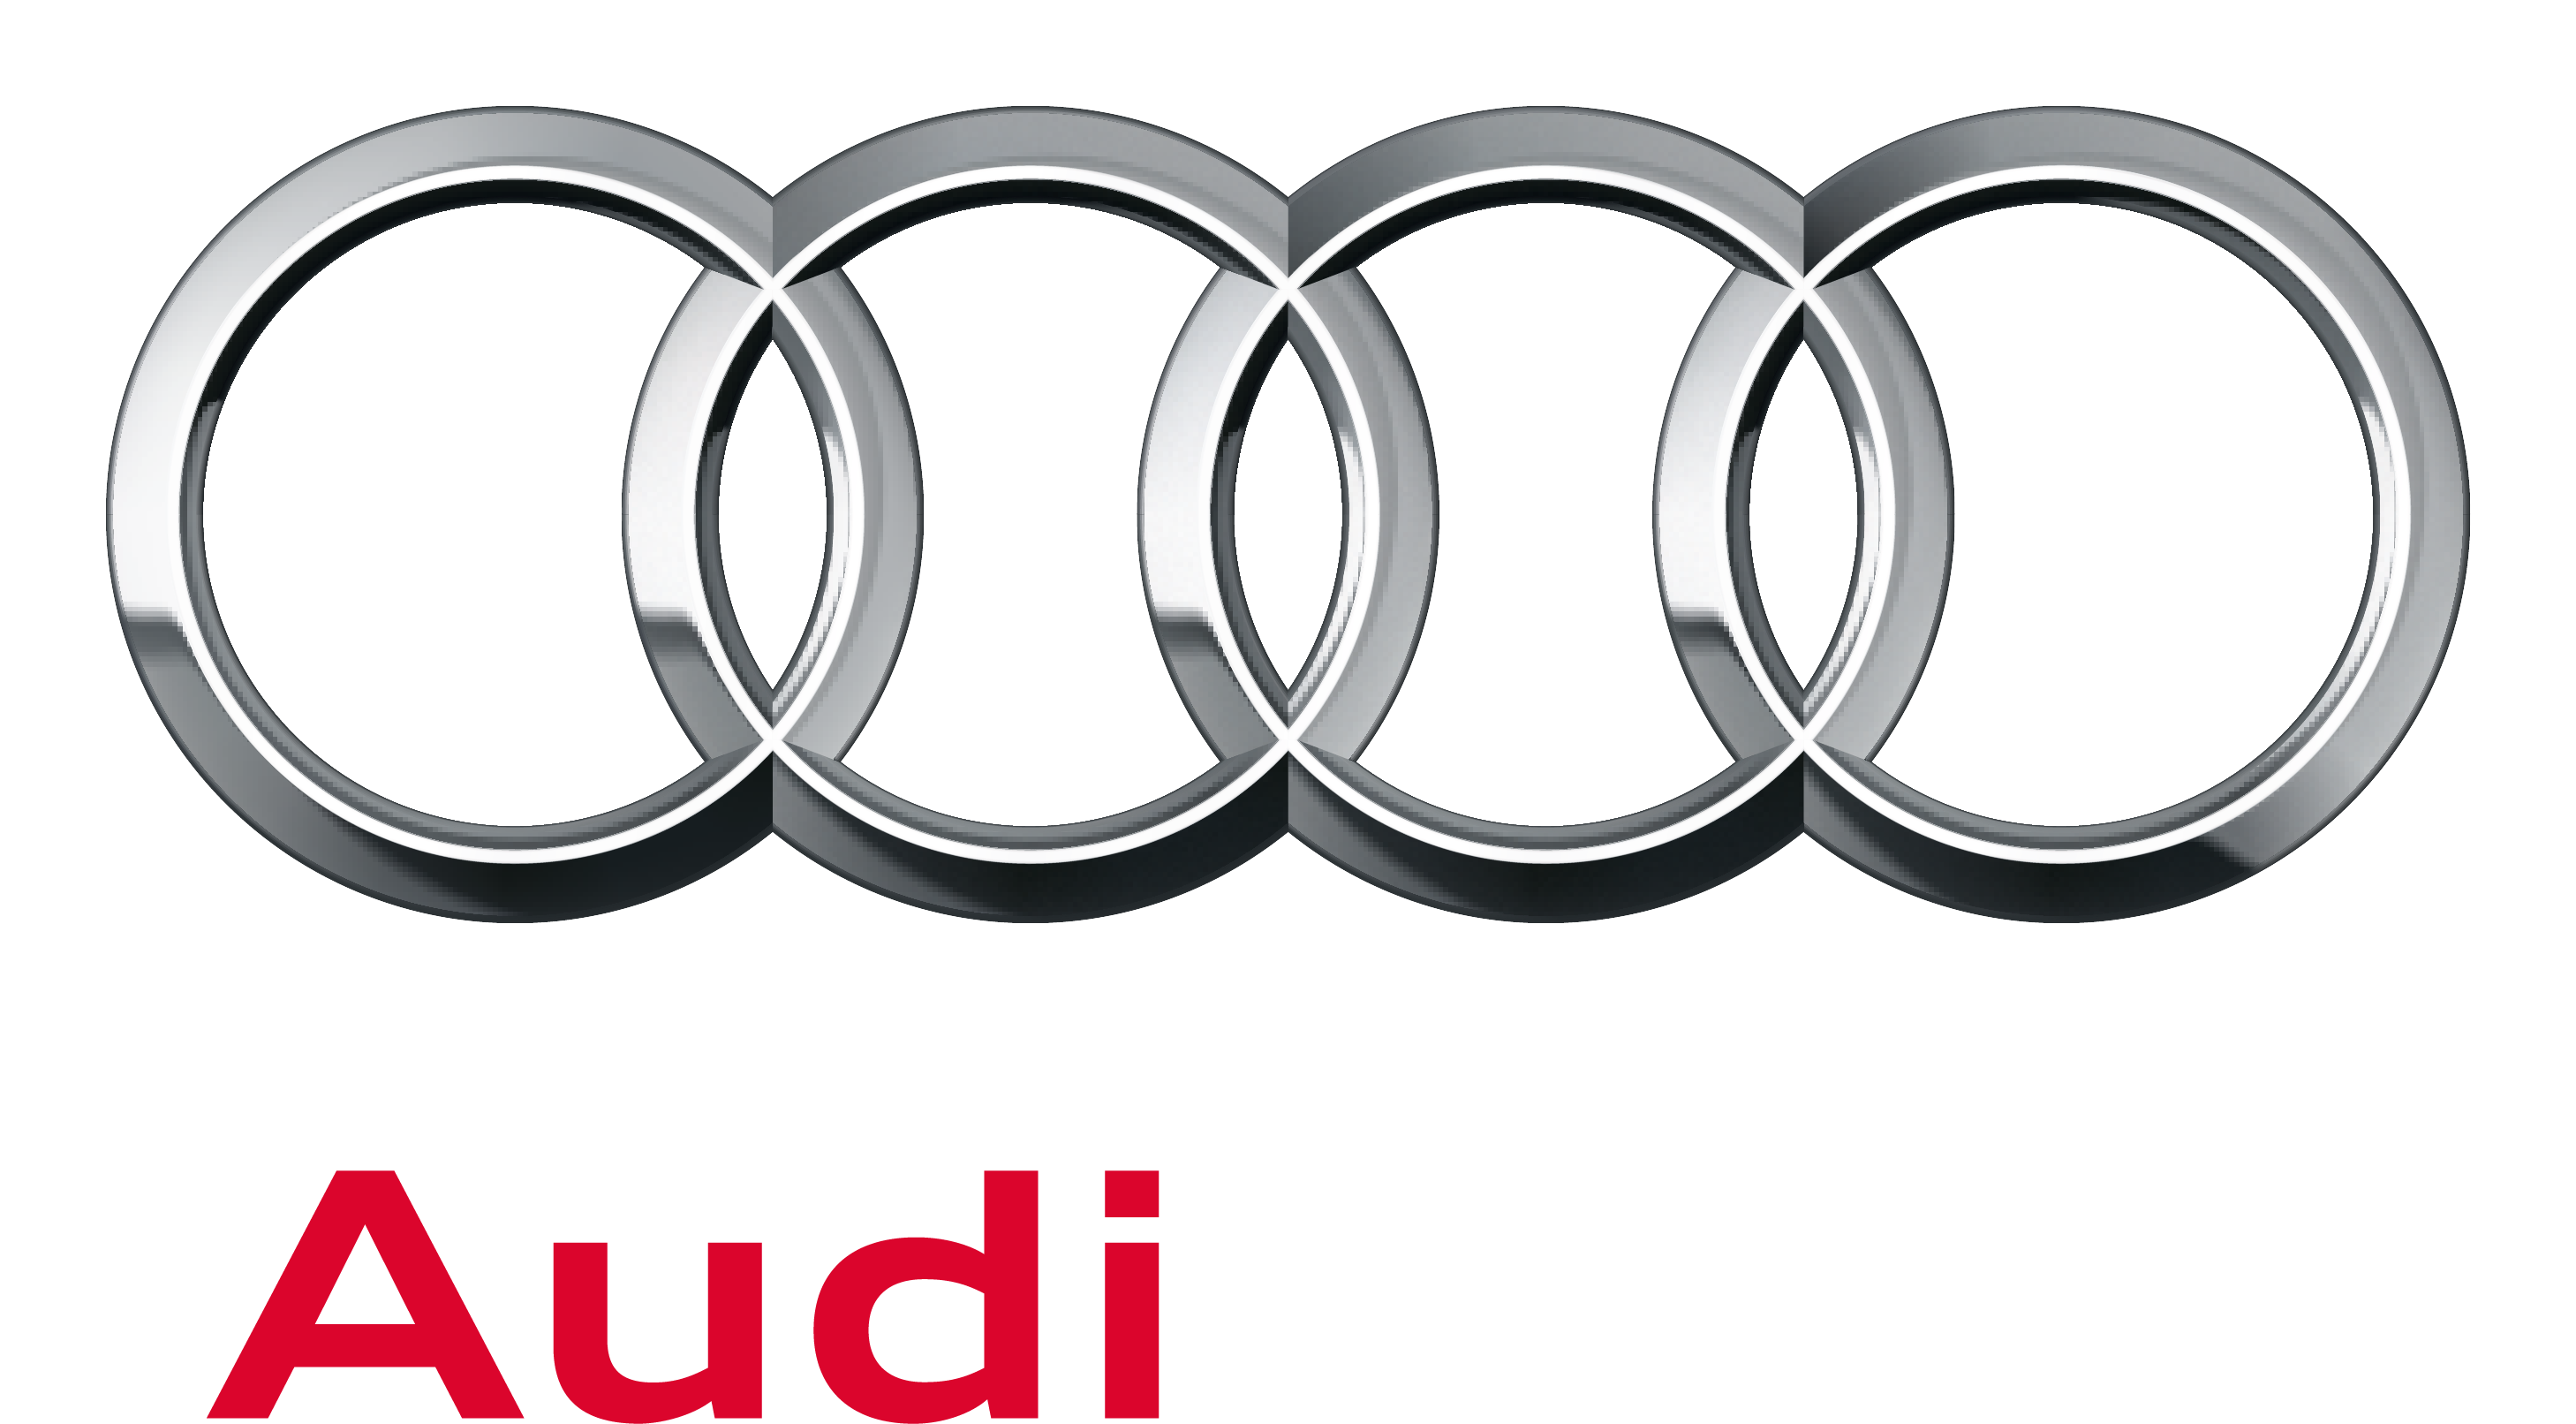 audi_logo Vector EPS Free Download, Logo, Icons, Clipart.